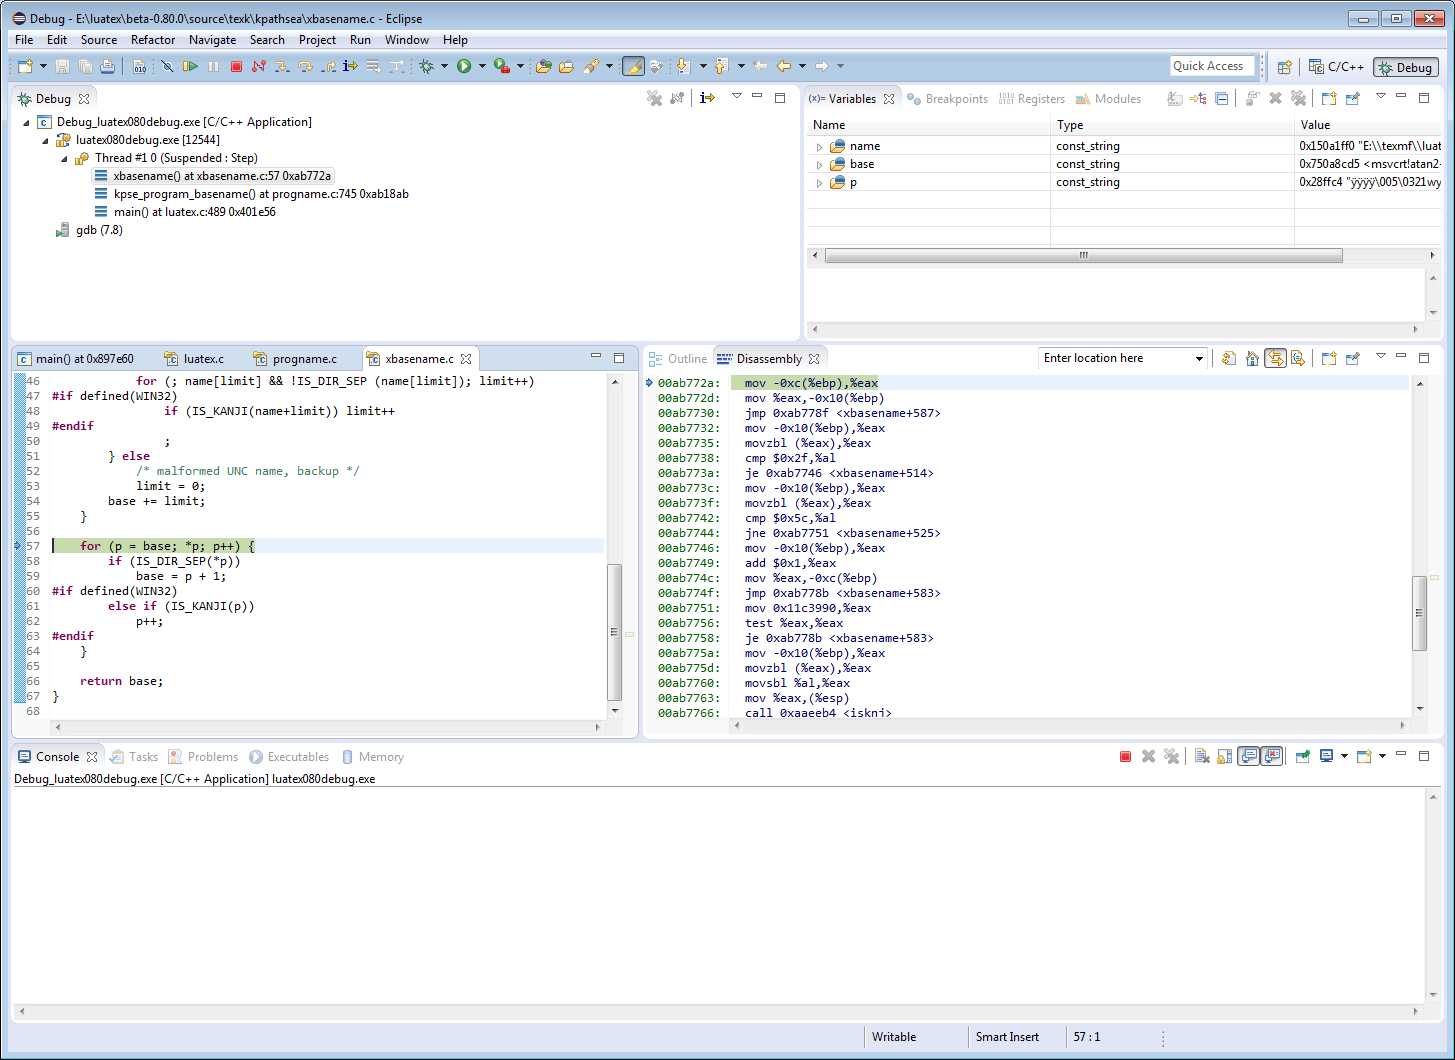 The Eclipse IDE debugging LuaTeX using GNU gdb debugger